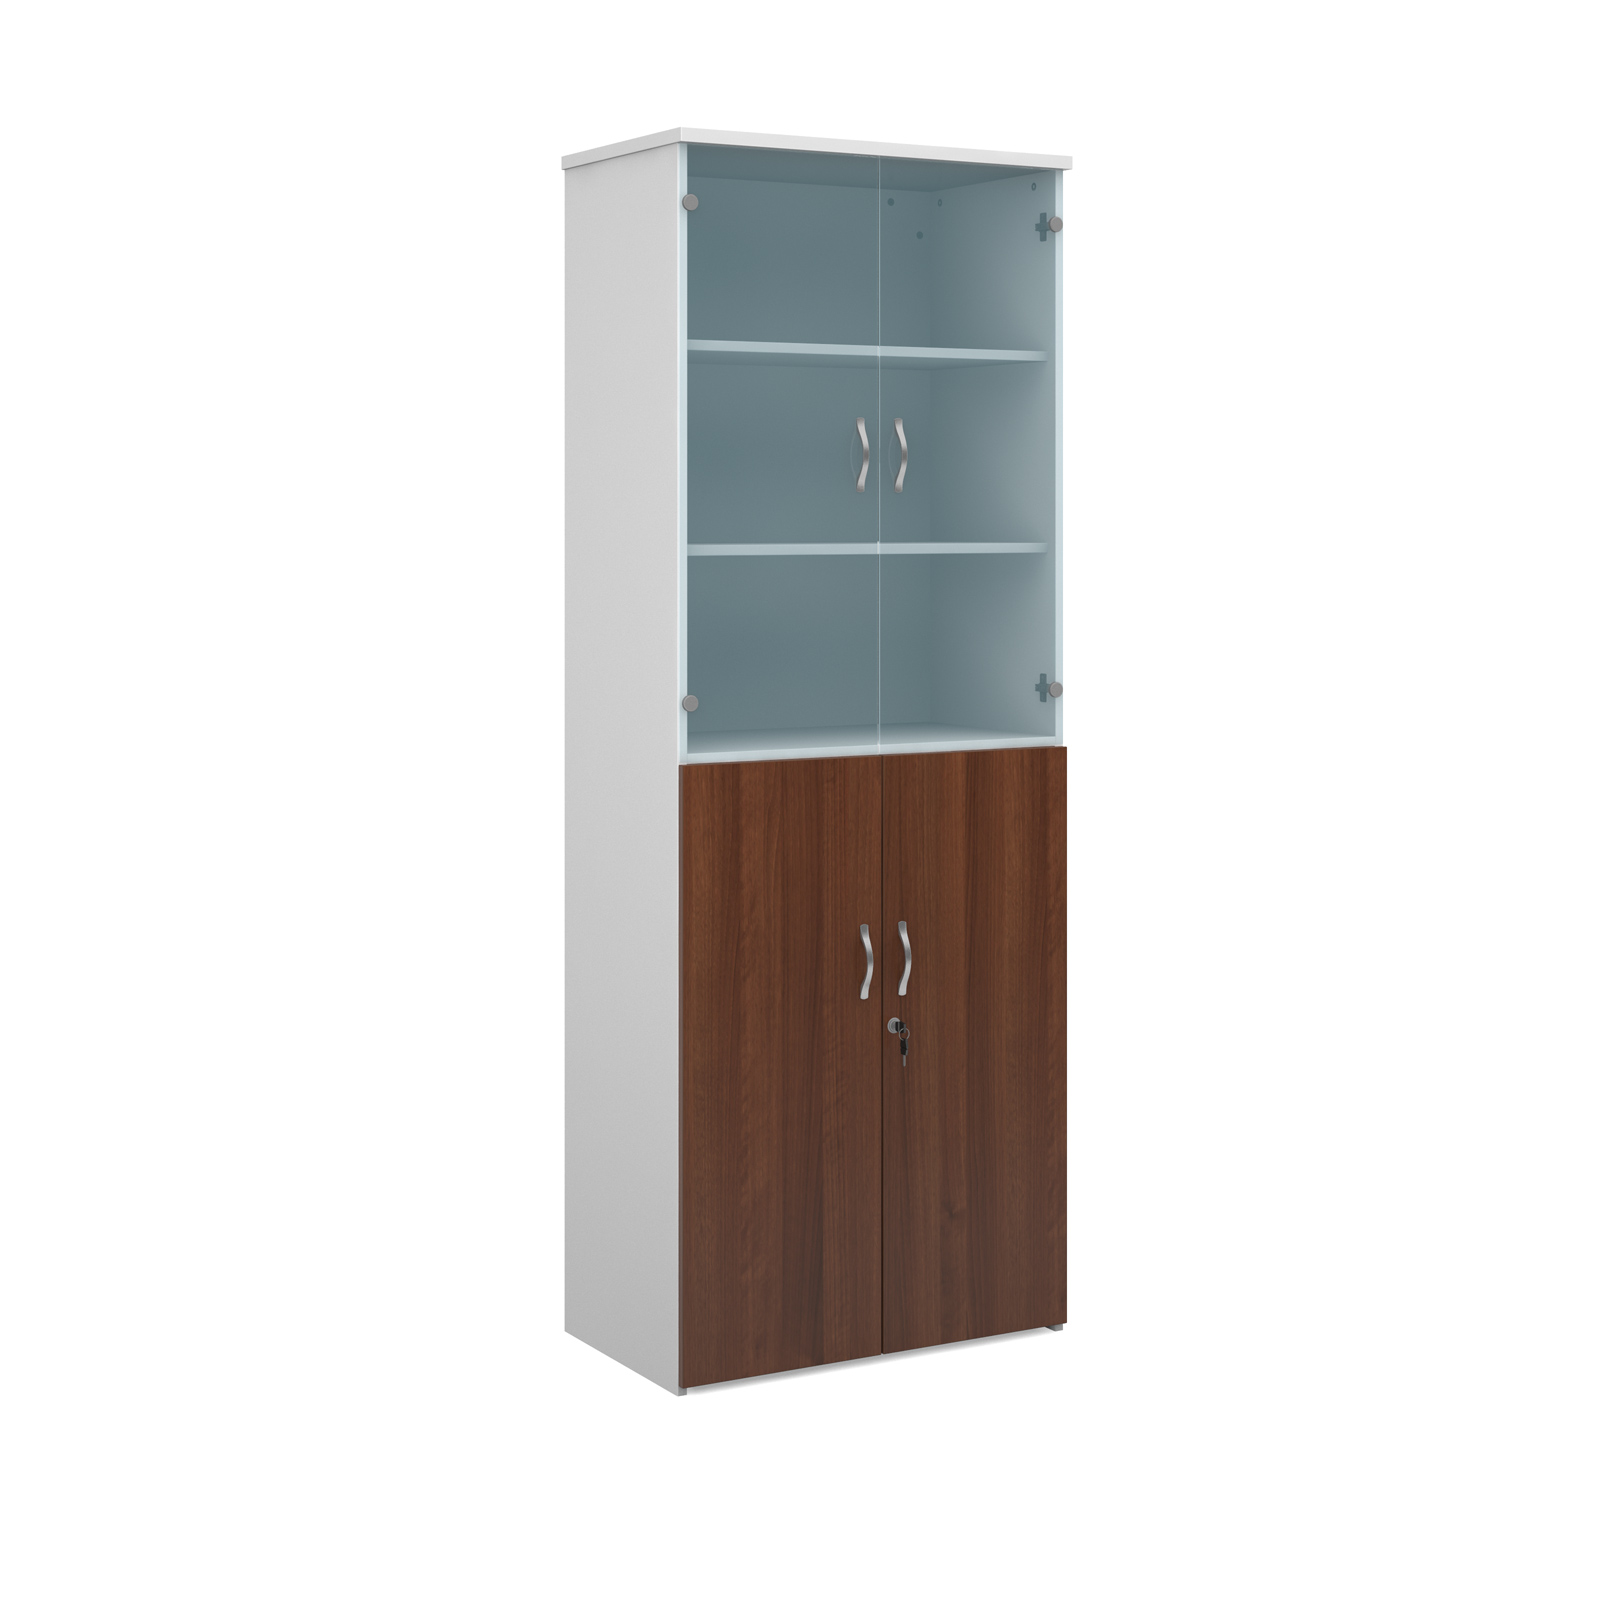 2140mm high combination unit with glass and wood doors in walnut and white